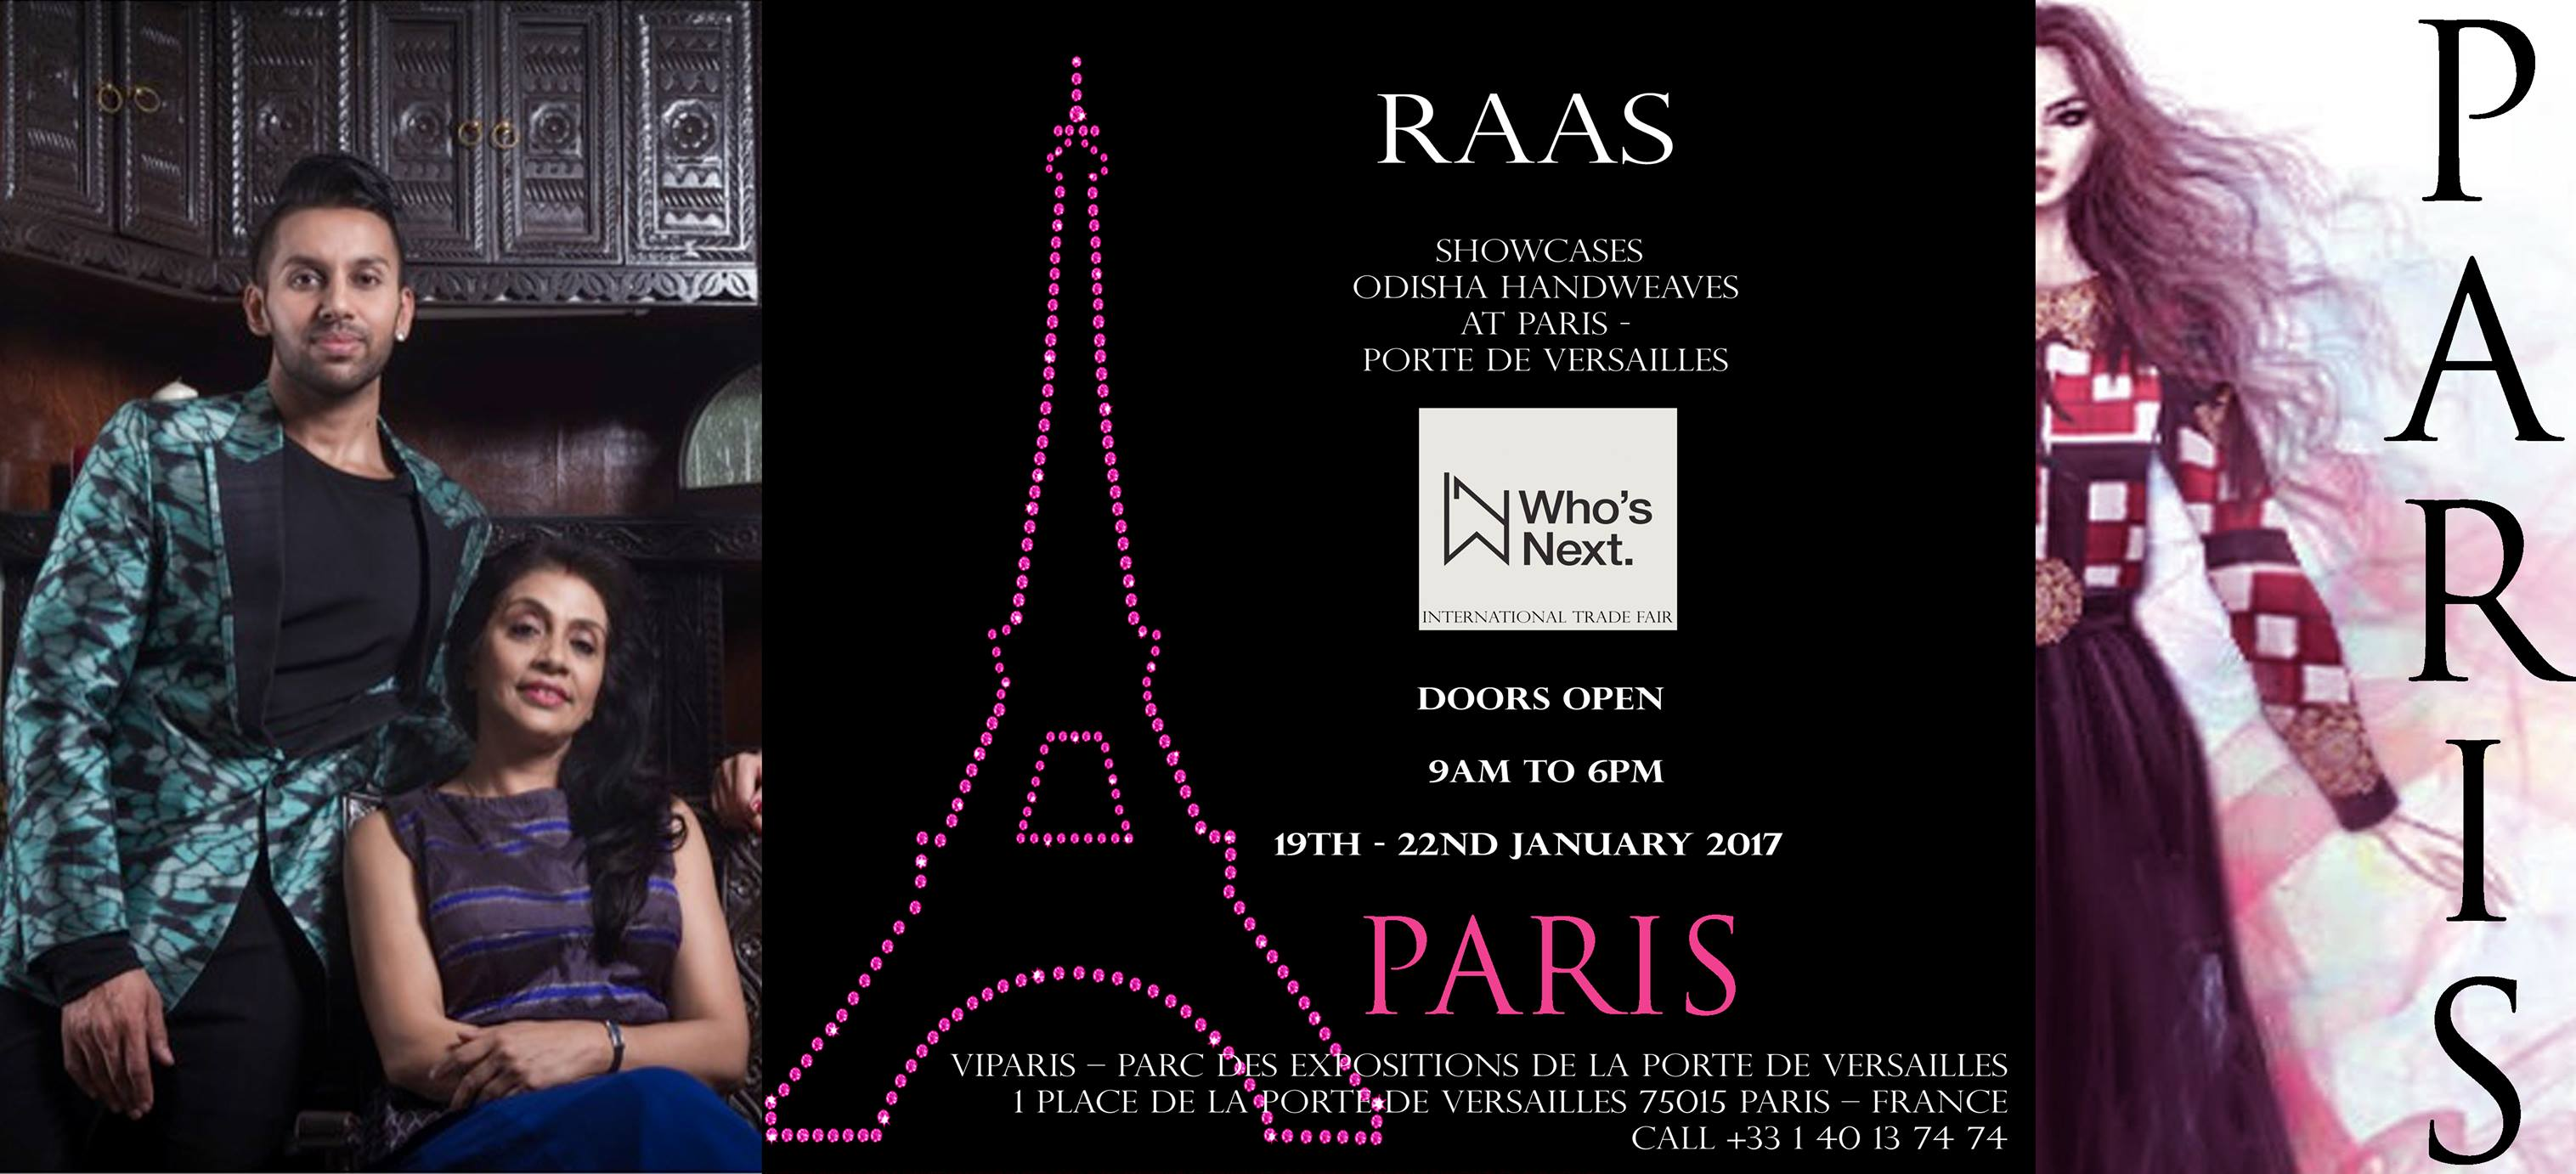 Raas odisha fashion label in paris bbsrbuzz (3)